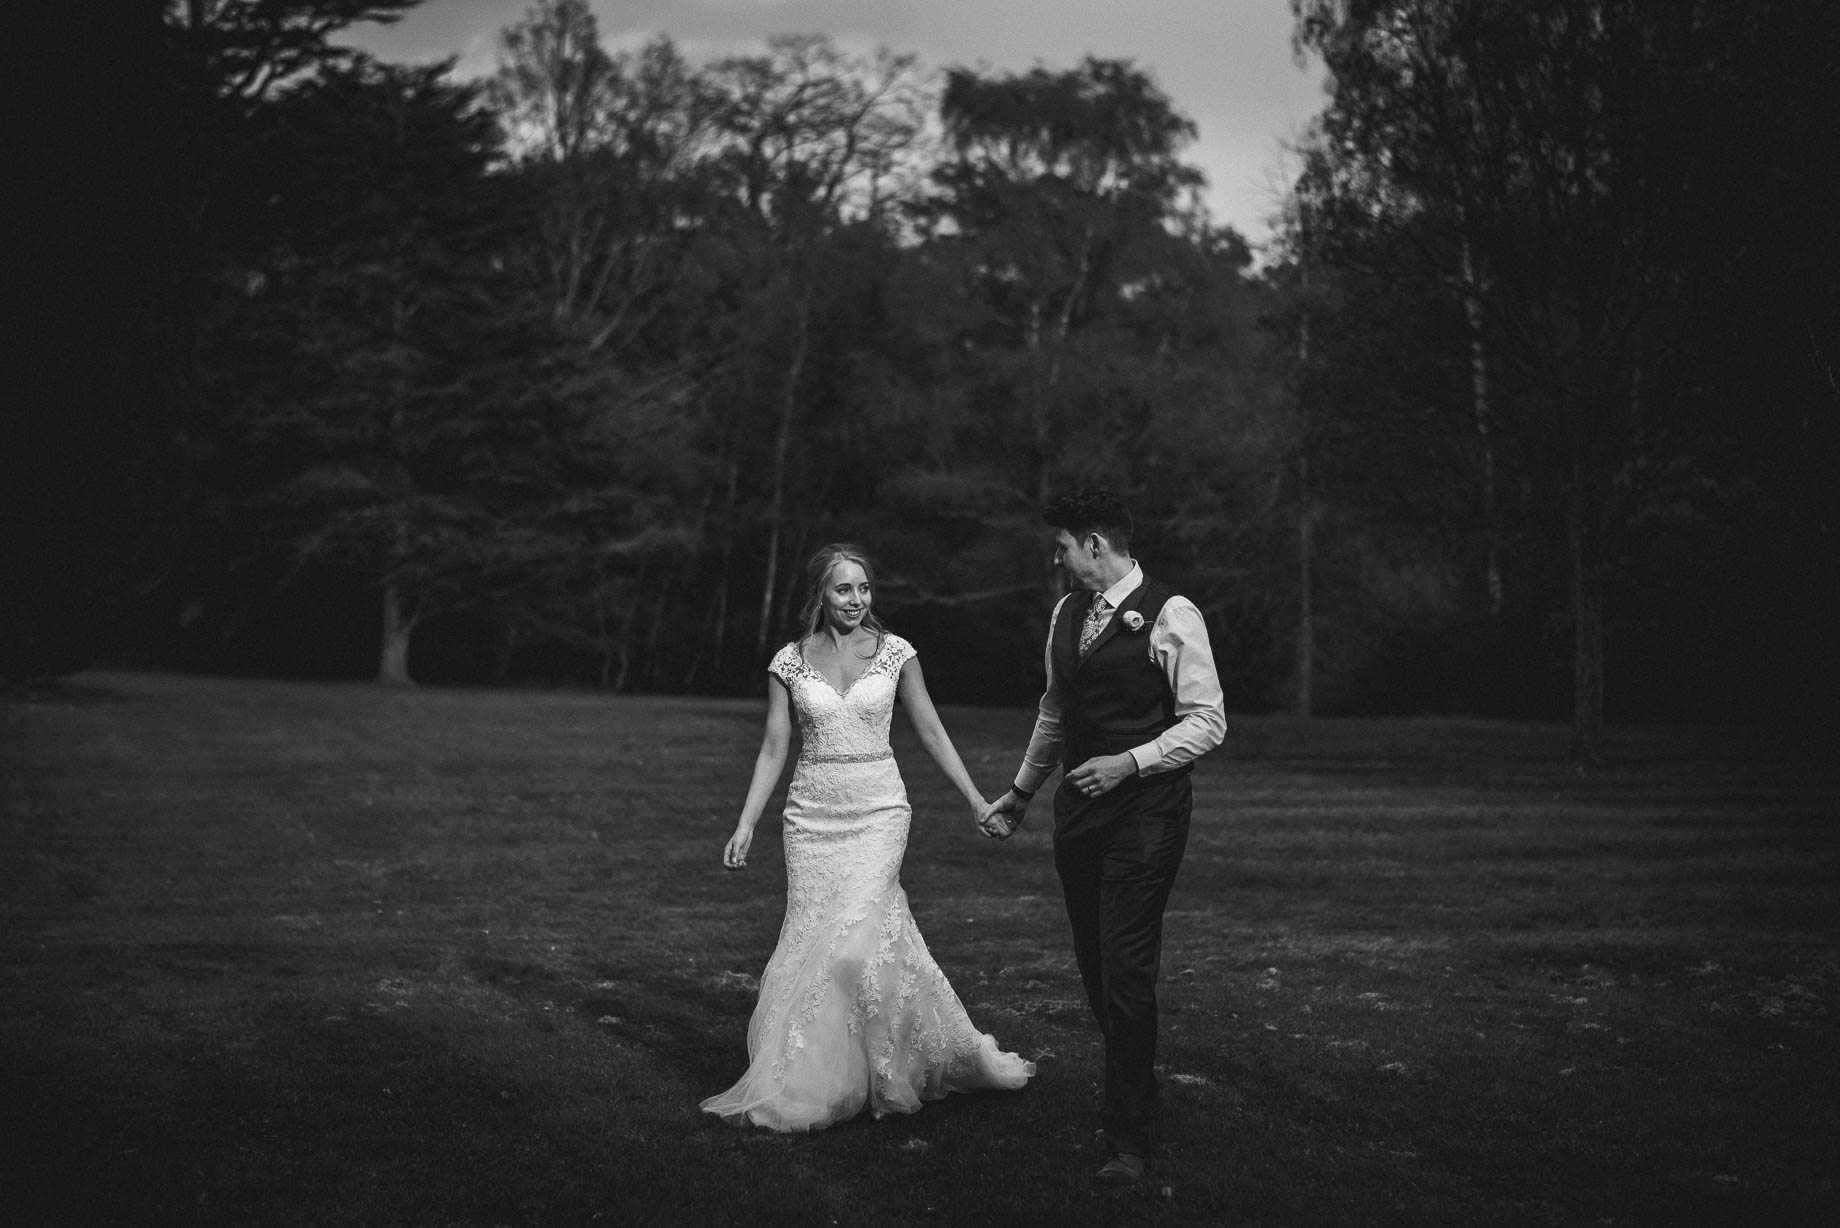 Hampshire wedding photography by Guy Collier - Emily and Tom (133 of 164)